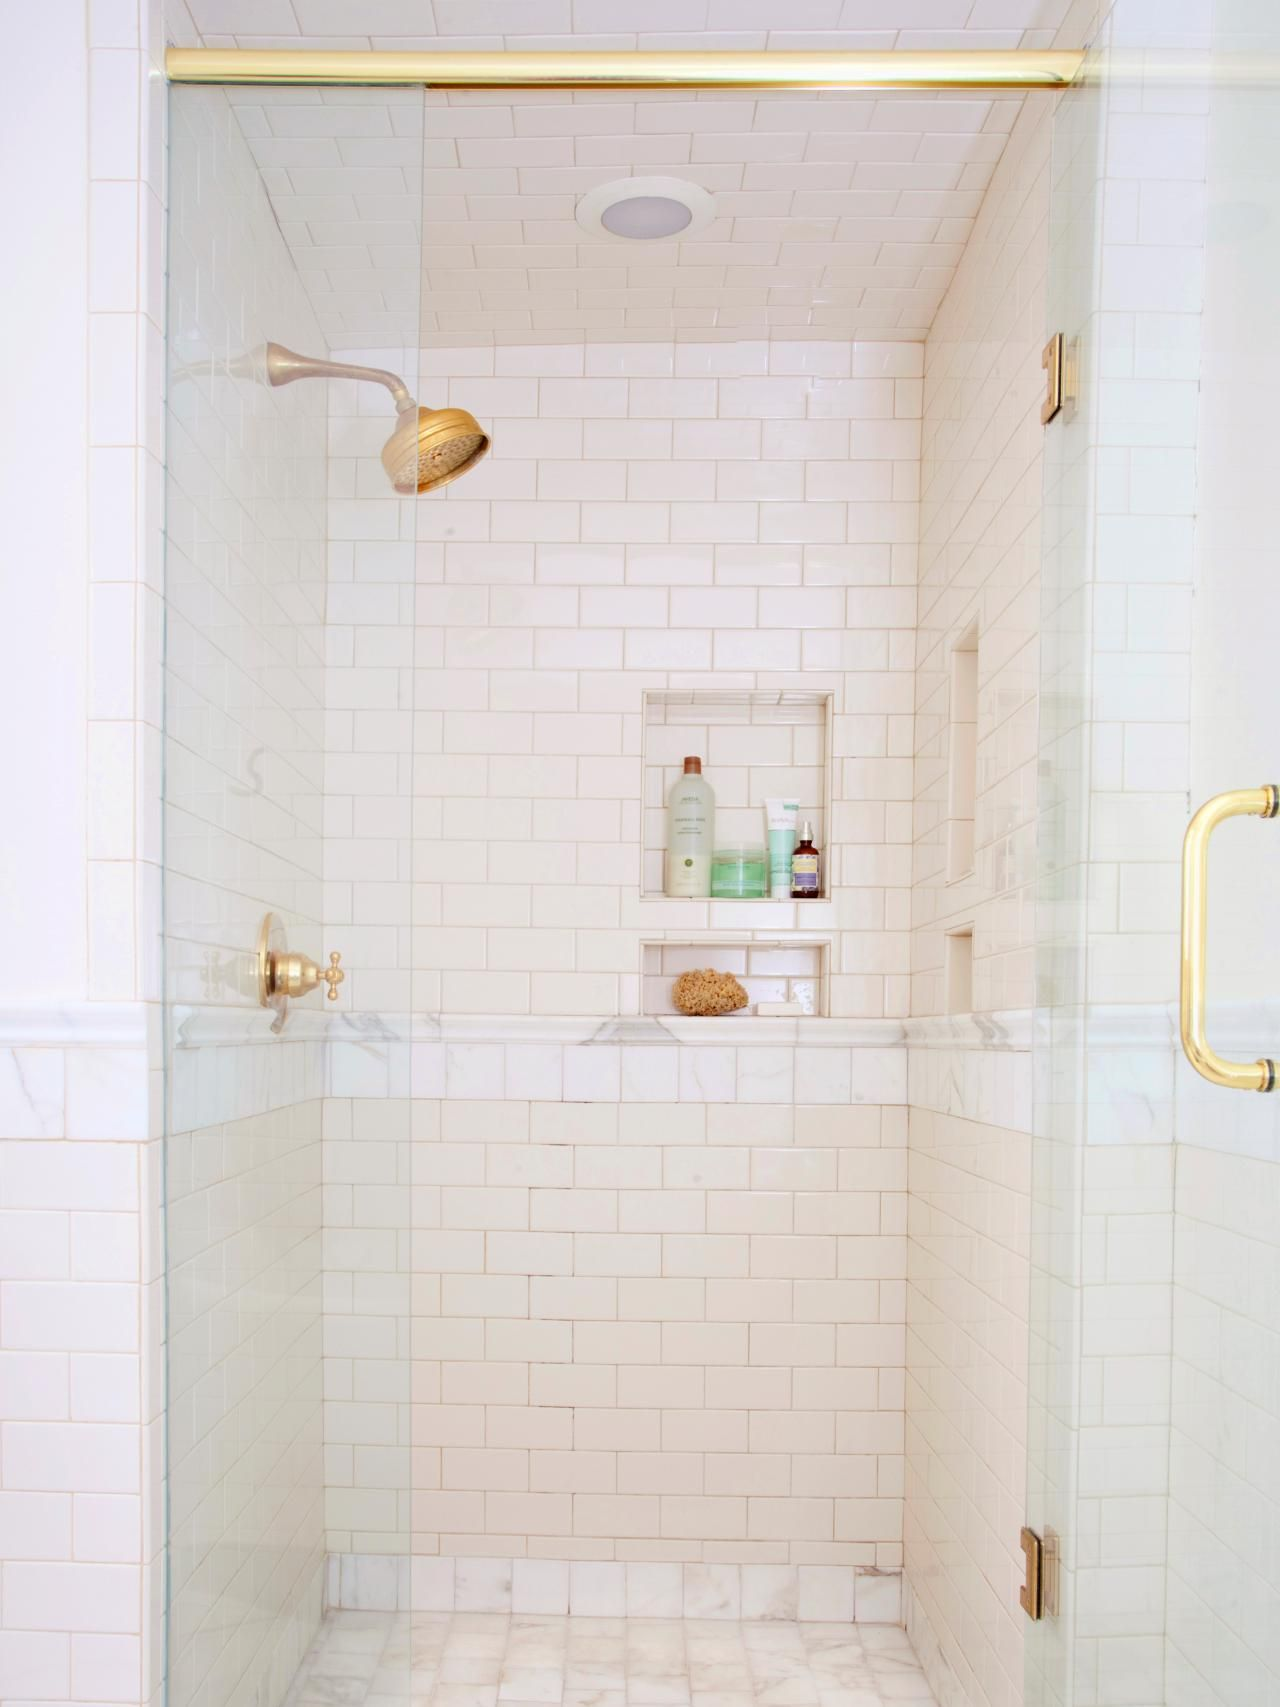 lighting spa yellow blue and grey size colors tiny vintage space bathroom photos modern small ideas household tubs ation ealing of shower full design clawfoot orating room p paint tile storage black pictures schemes bathrooms tiles